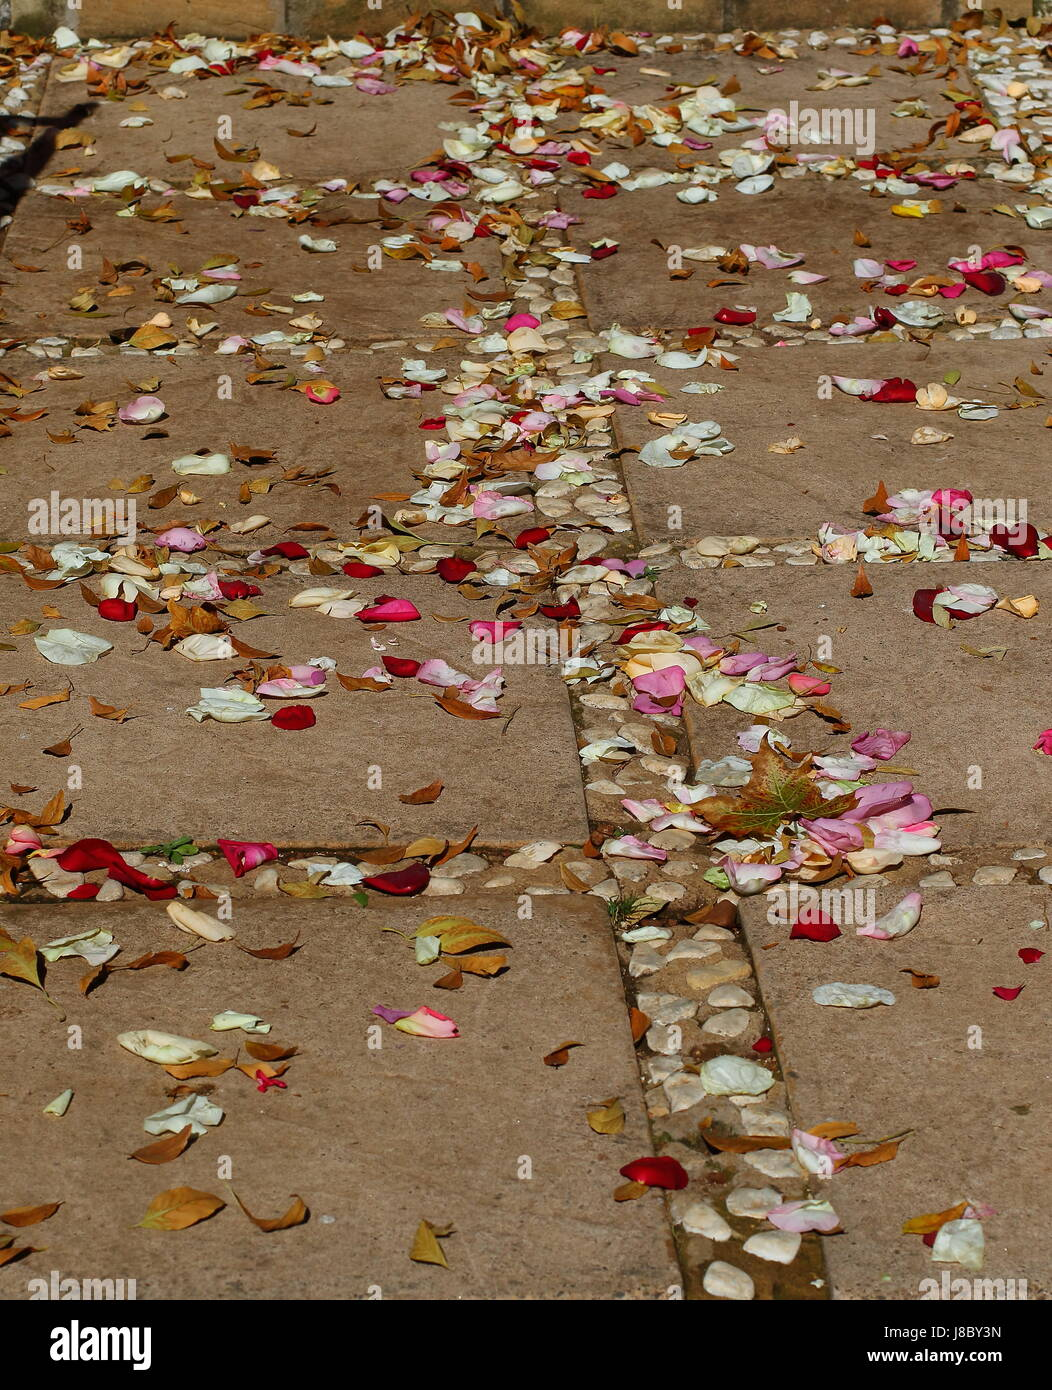 Colorful rose petals scattered on steps an a paved walkway Stock Photo